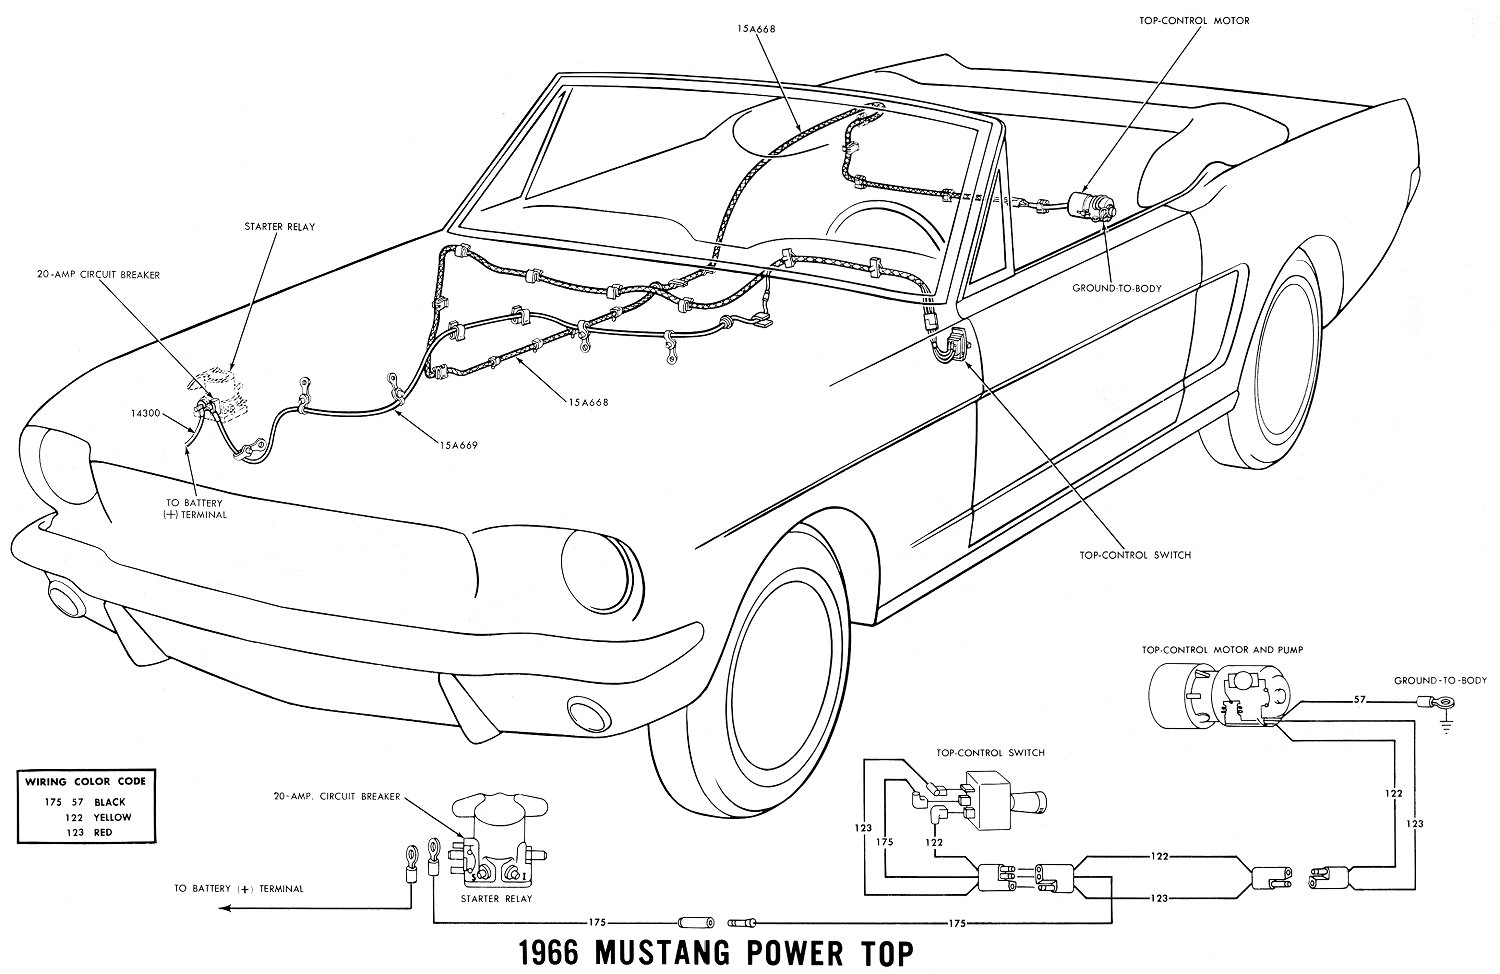 1966 mustang wiring diagrams average joe restoration 1966 ford mustang  wiring schematic 1966 ford mustang wiring